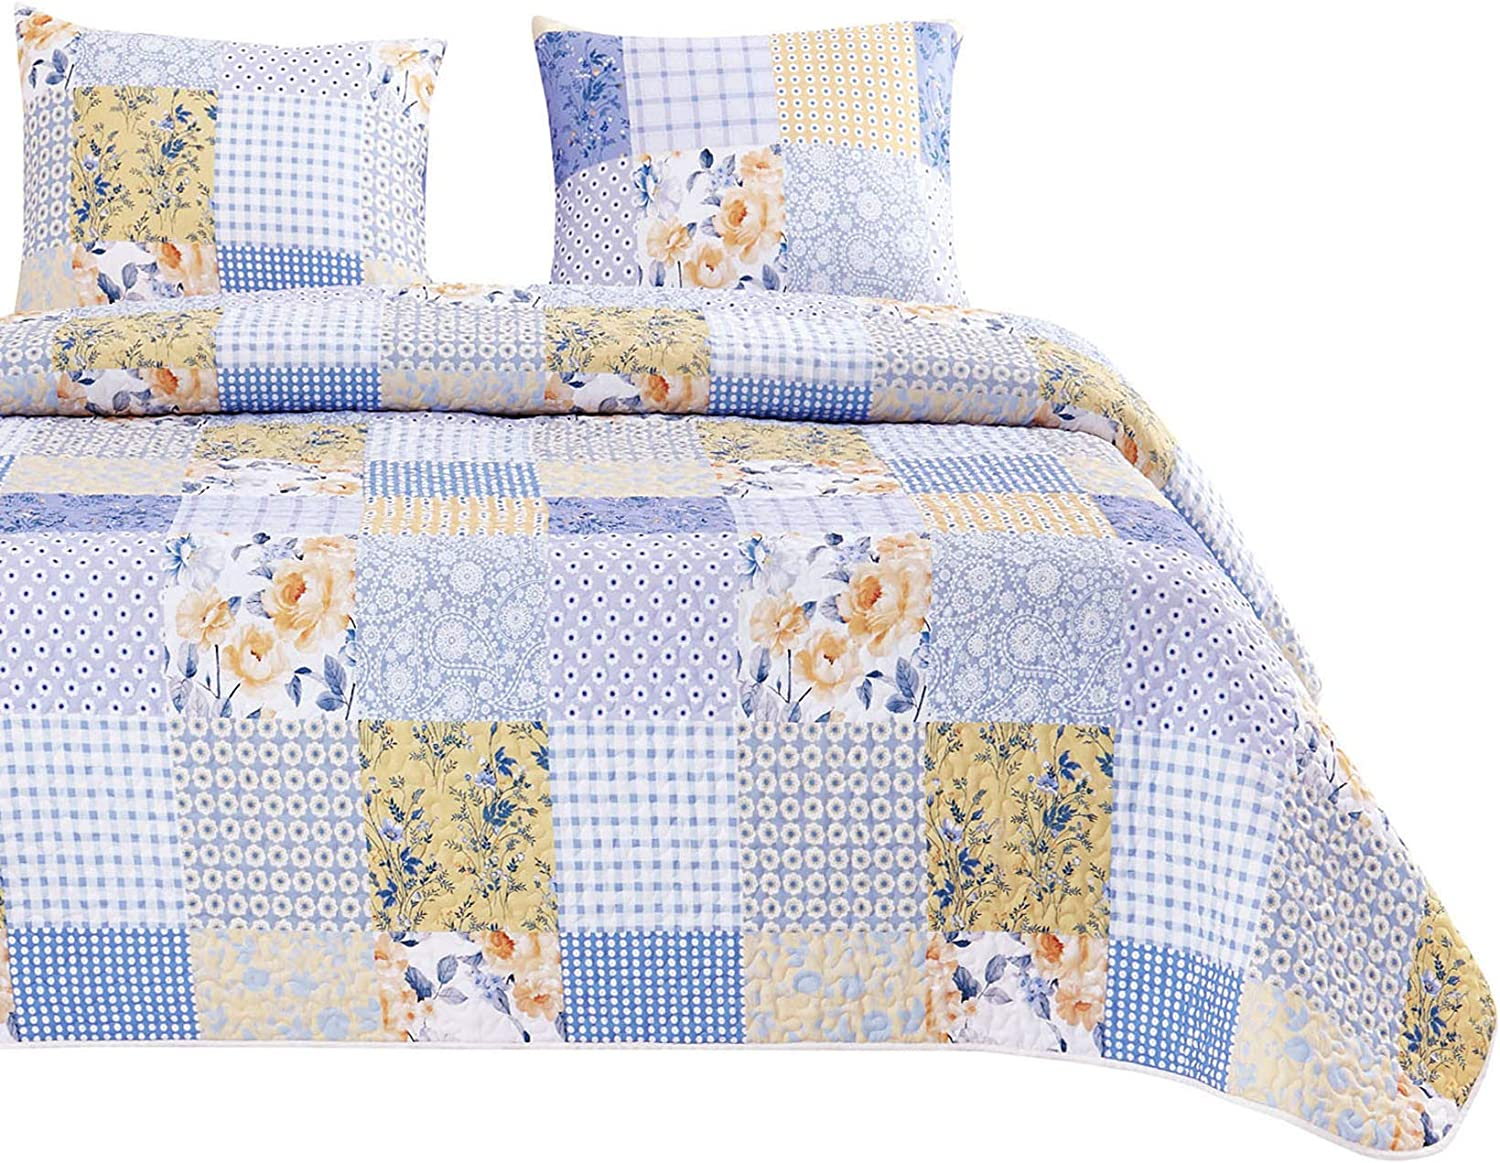 Wake In Cloud - Floral Patchwork Quilt Set, Flowers Botanical Plant Geometric Motif Pattern in Bluish Purple Yellow White, Soft Microfiber Bedspread Coverlet Bedding (3pcs, Queen Size)